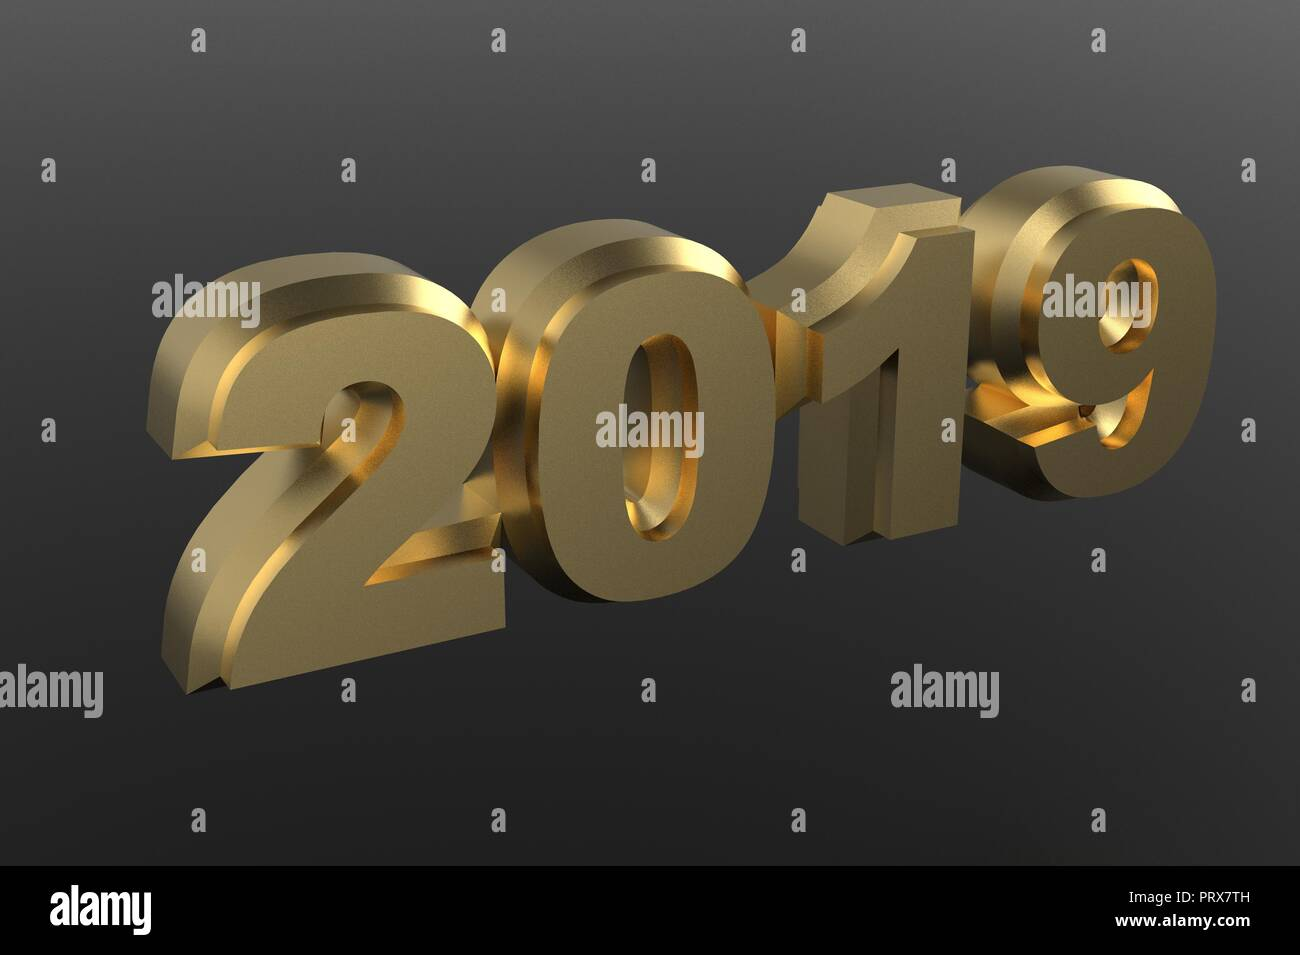 new year golden text 2019 3d rendering isolated on gray background